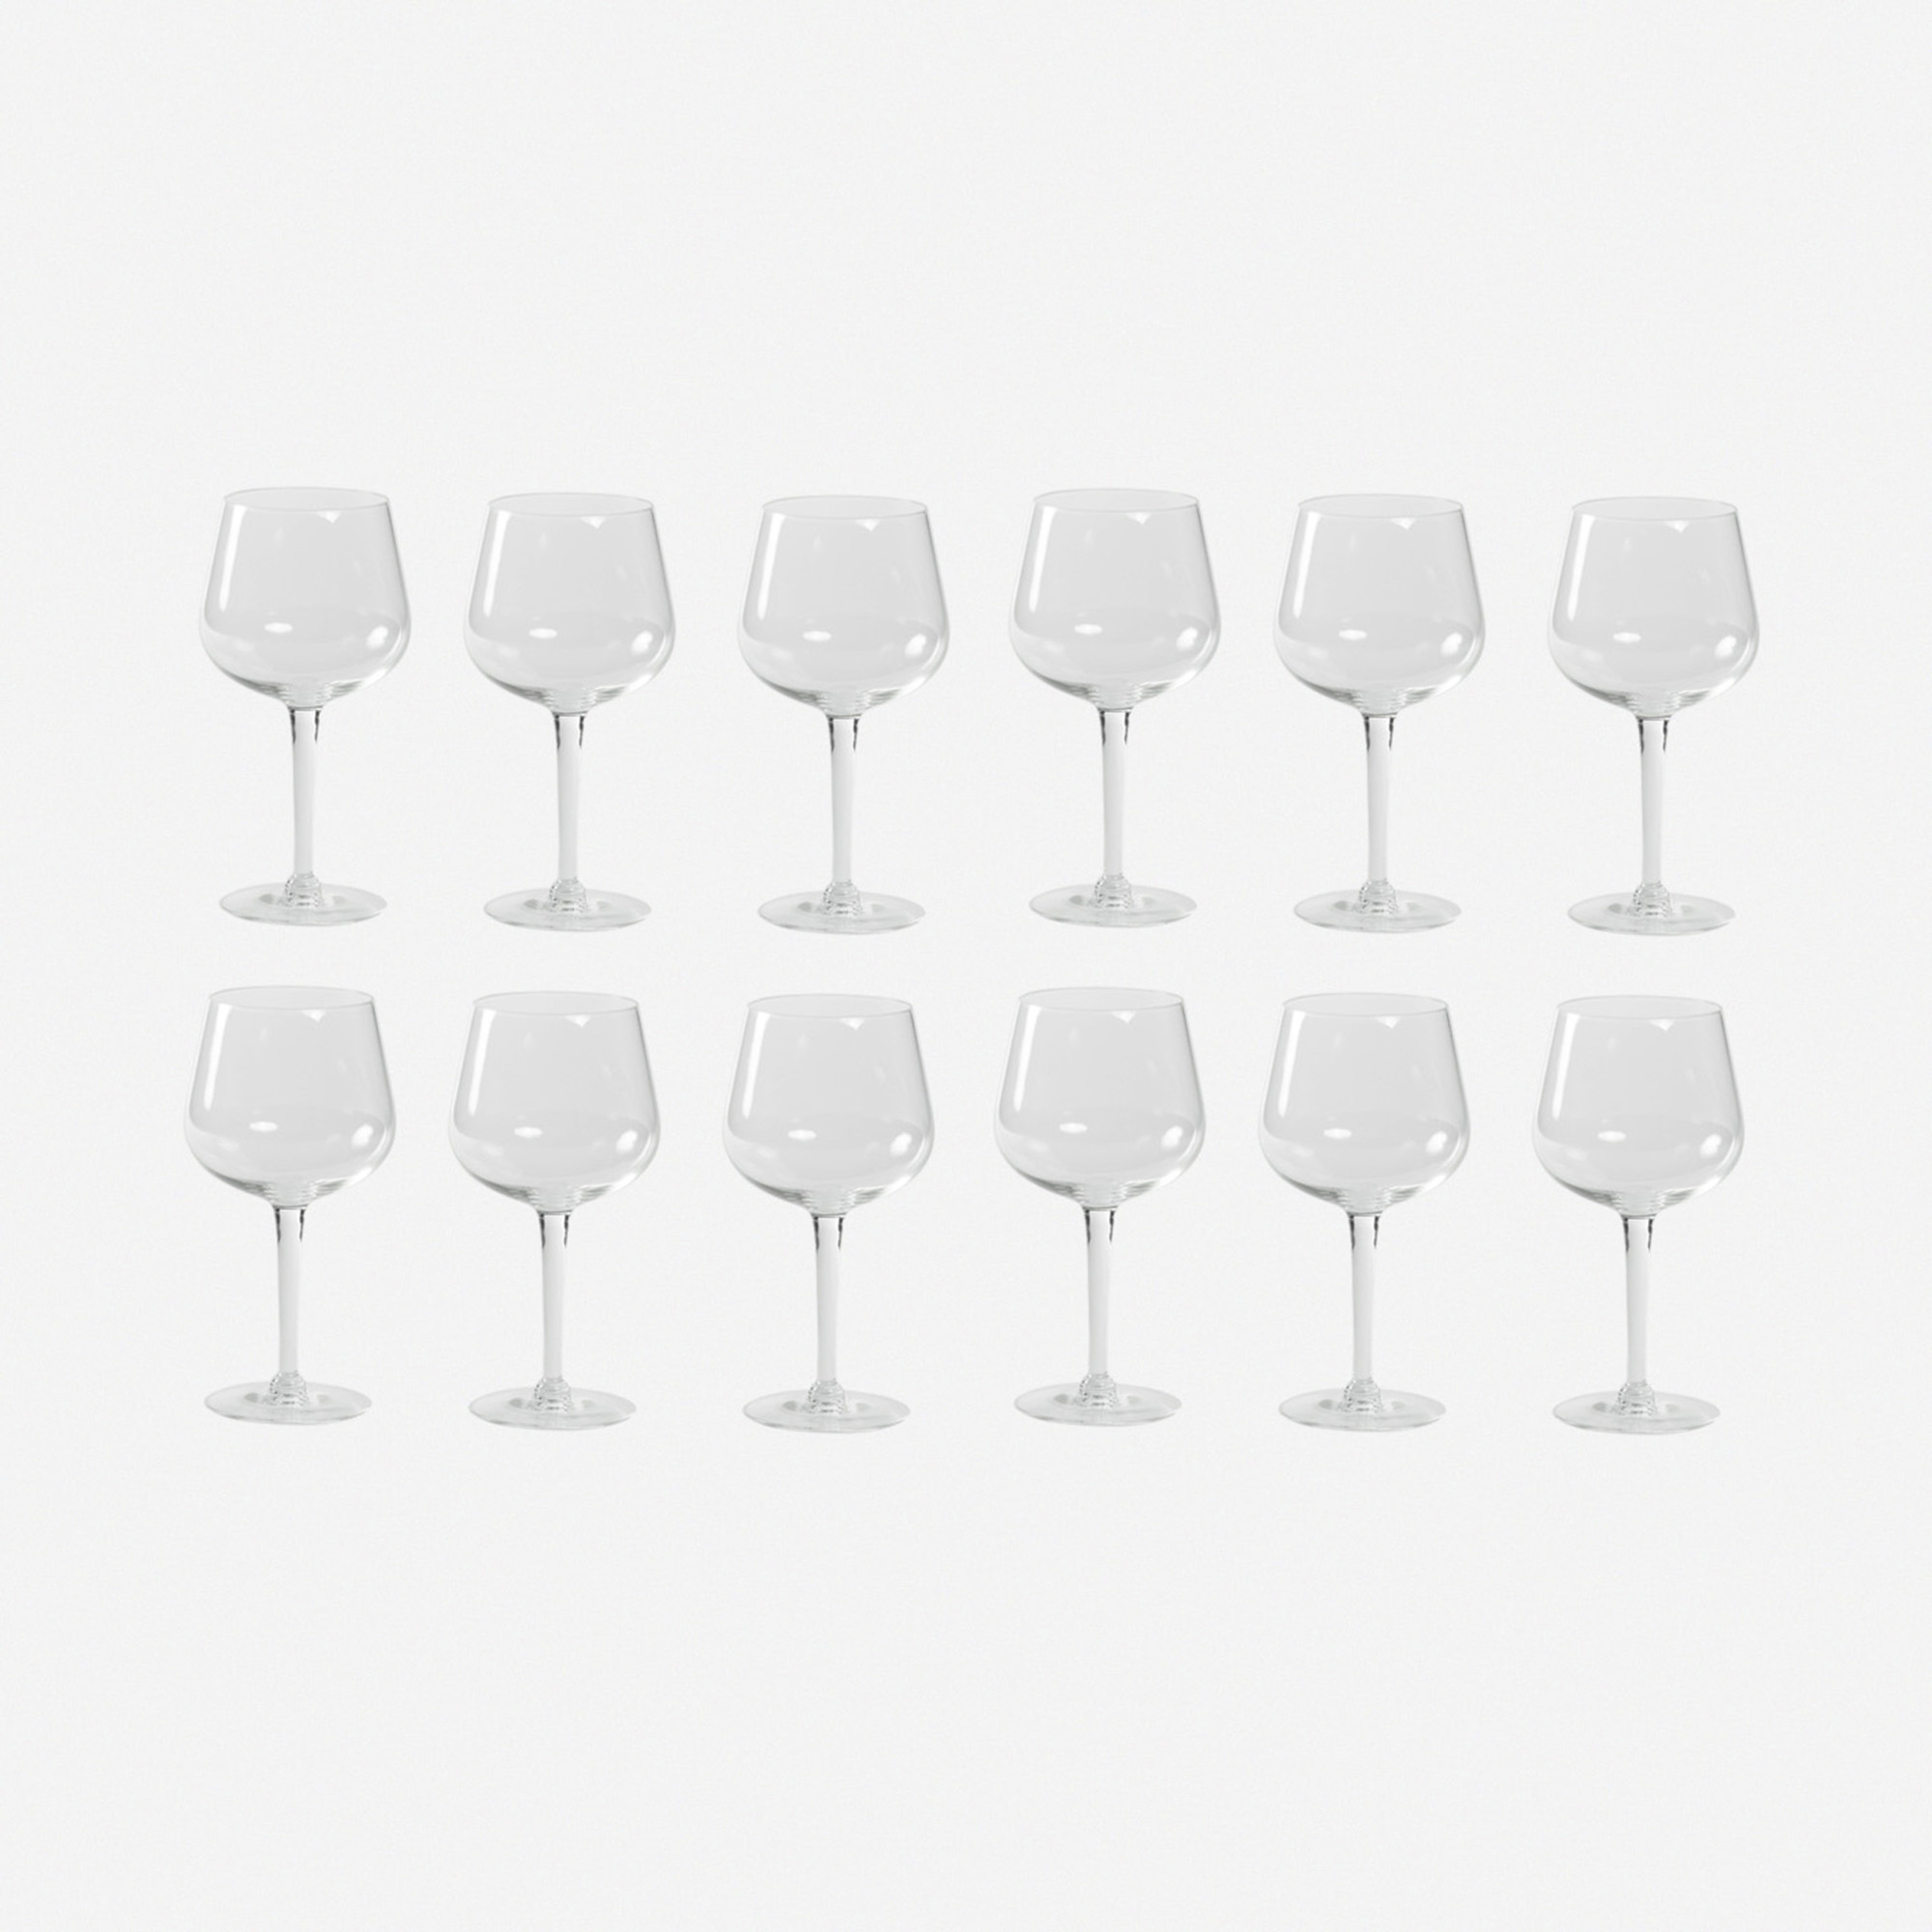 449: Garth and Ada Louise Huxtable / White Wine glasses from The Four Seasons, set of twelve (1 of 1)